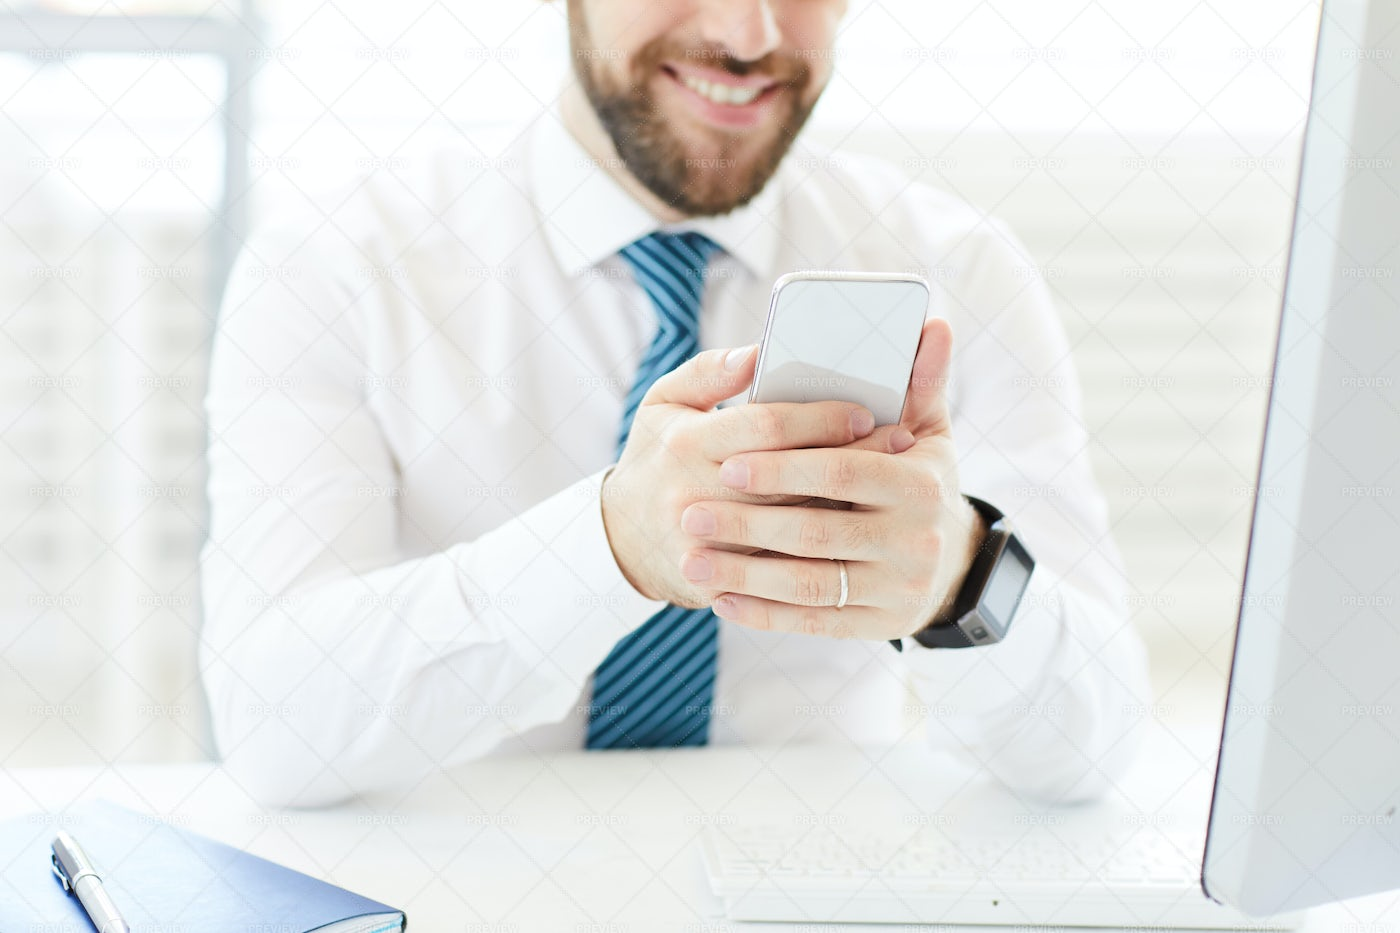 Watching Video On Smartphone: Stock Photos